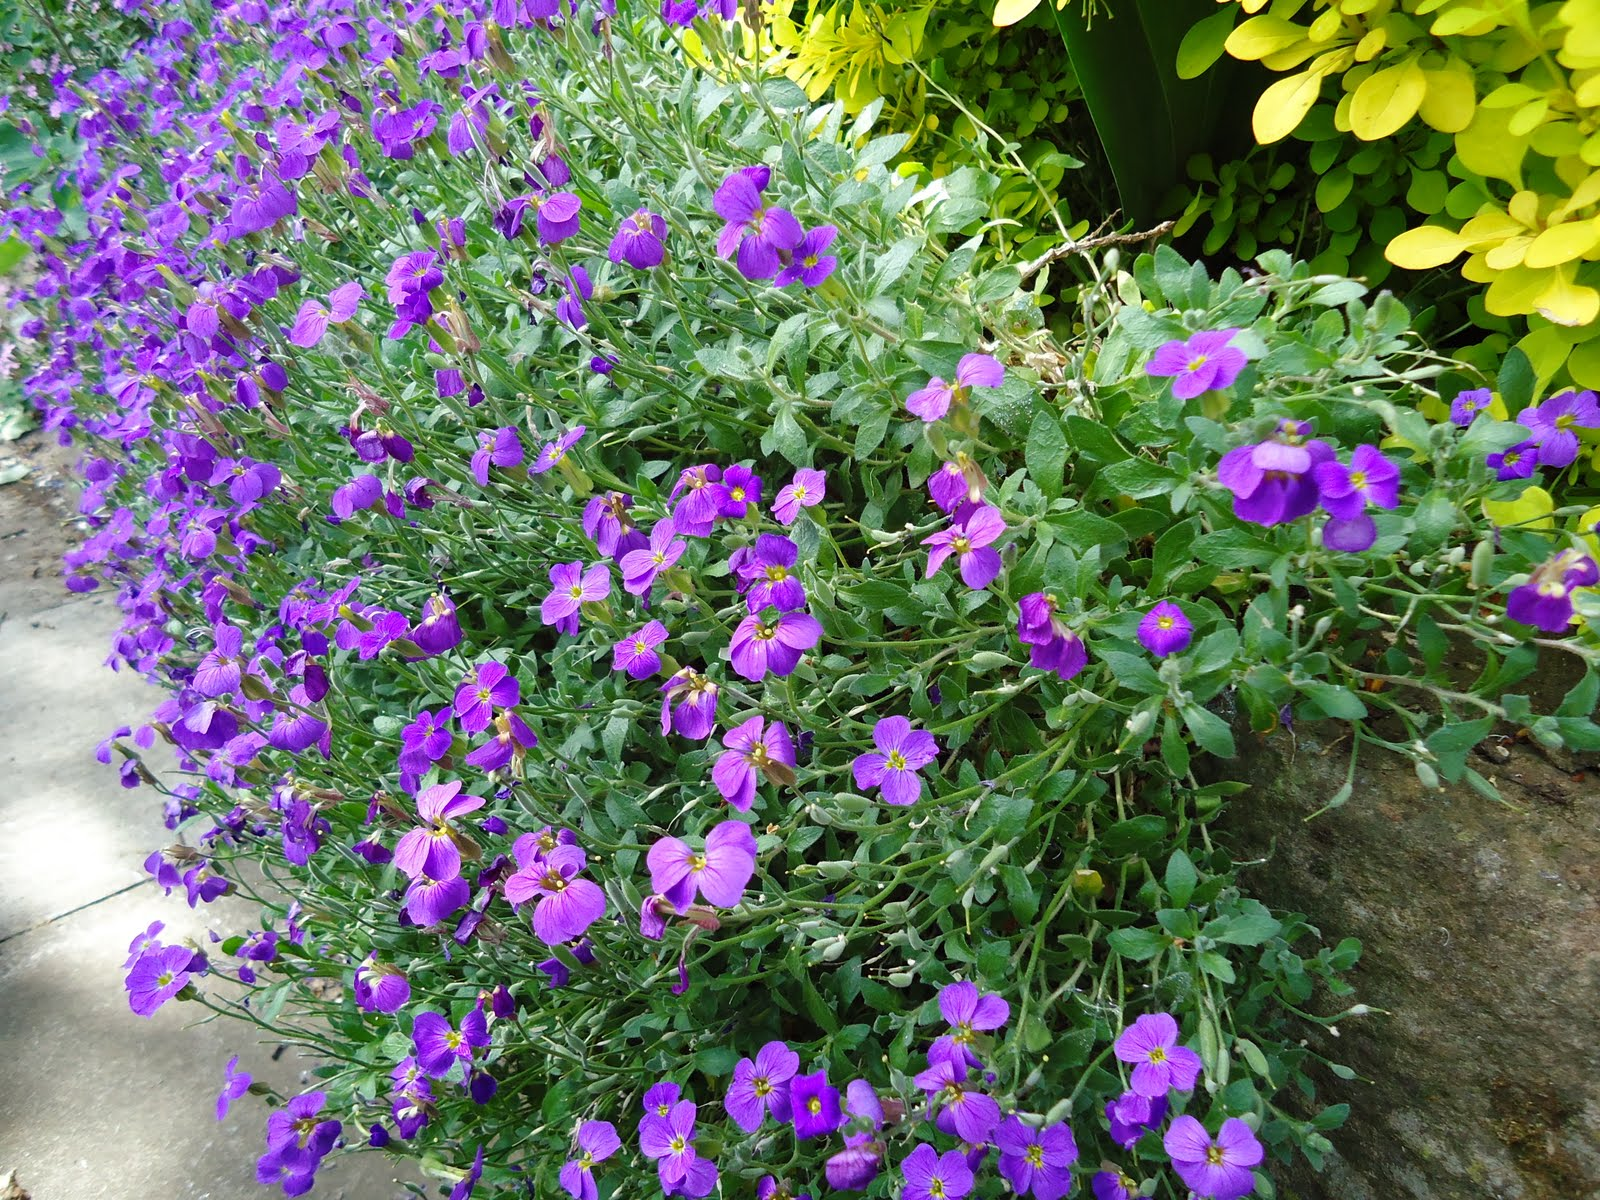 Perennial Plant Growing About 4 Inches High And Spreading 18 24 There Are Several Varieties In Varying Shades Of Red Lilac Purple